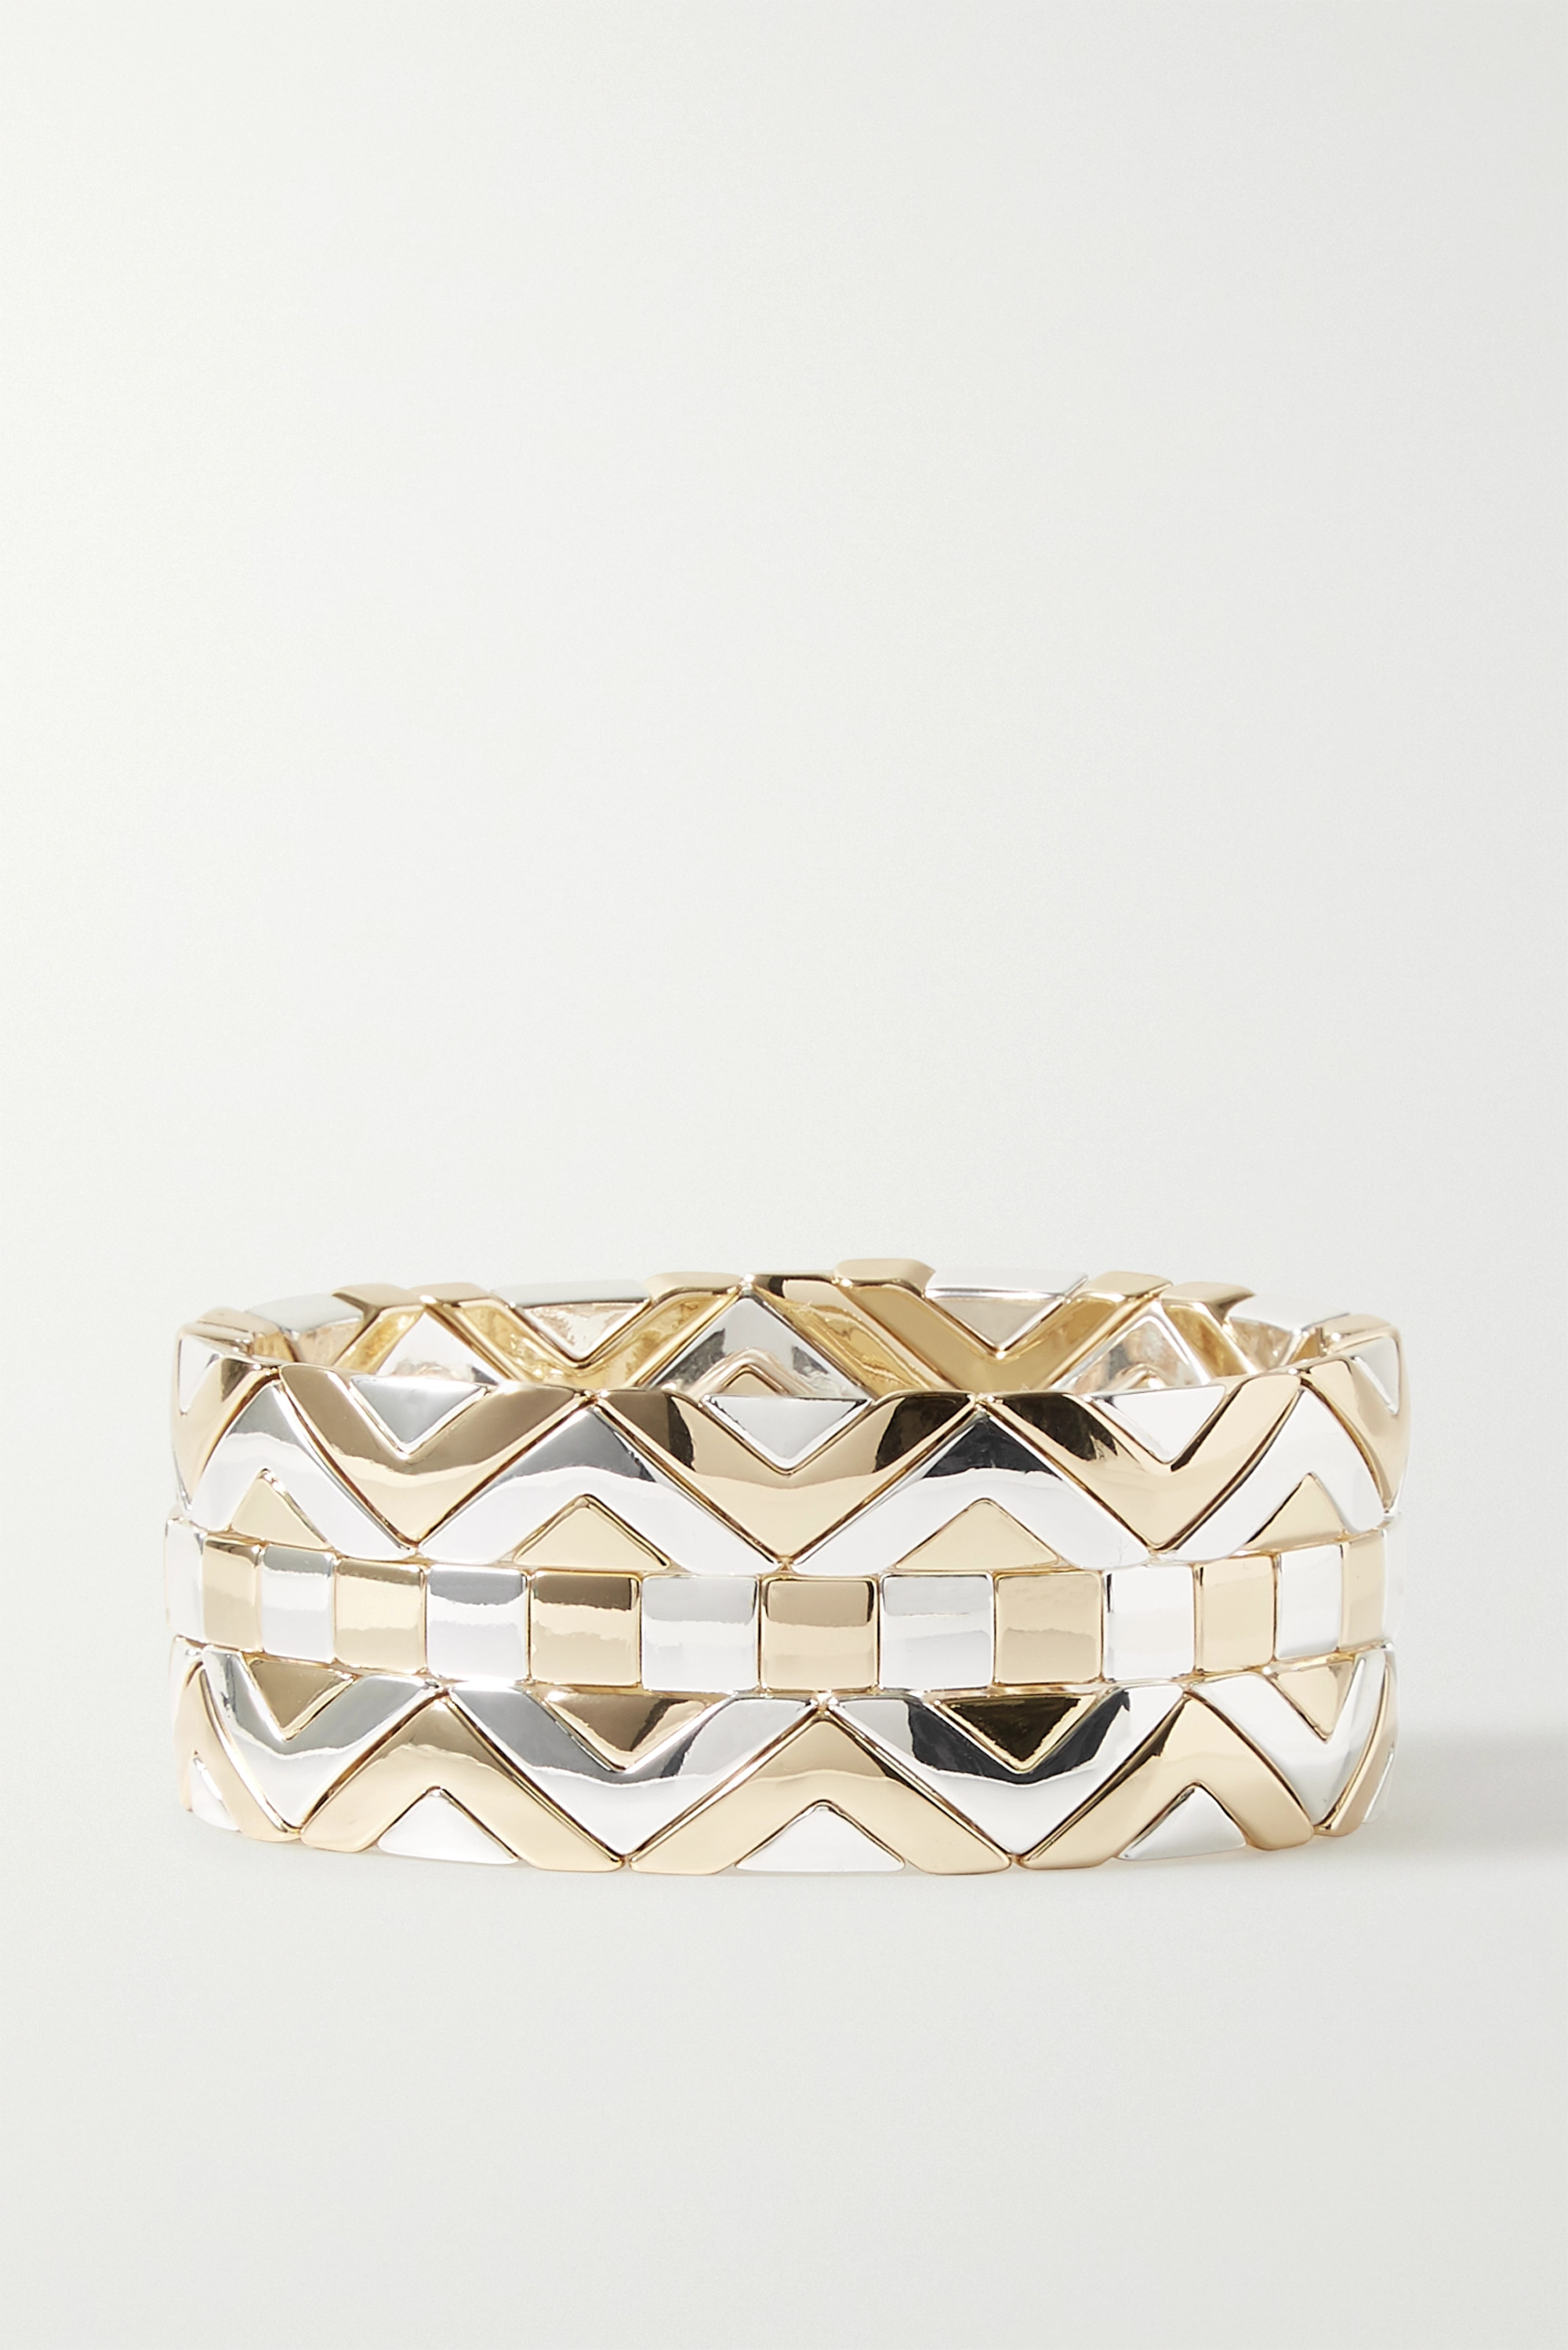 Roxanne Assoulin Raise The Bar set of three gold and silver-tone bracelets